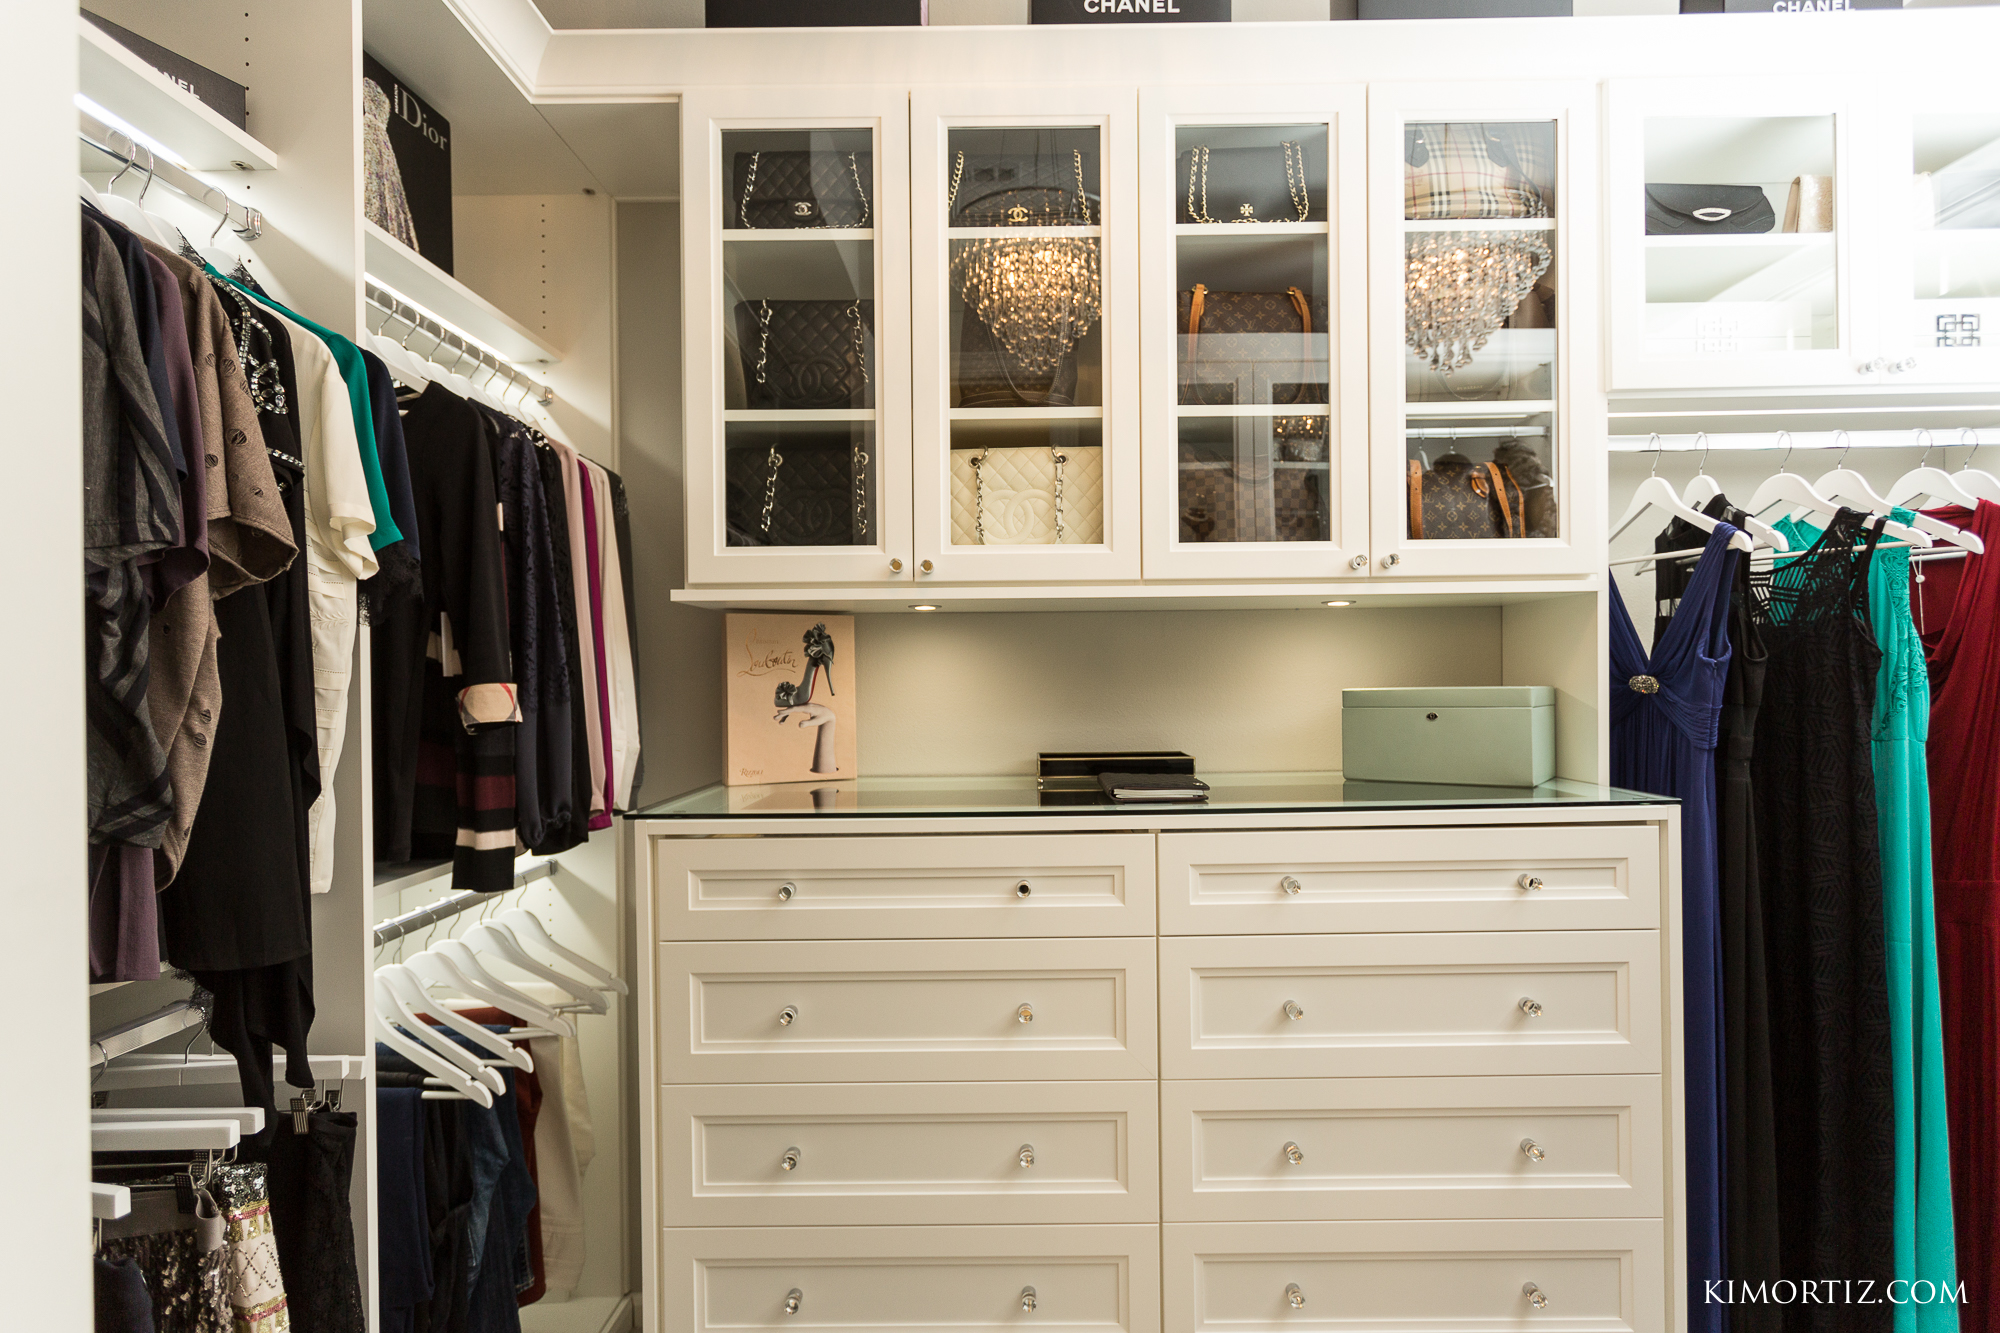 Closet Envy goes above and beyond to create spaces you'll love. Our designers work to make your dreams come true. In this customer showcase we wanted to show you a gorgeous boutique closet that will be the envy of the neighborhood. #designyourhappyplace #closetenvy